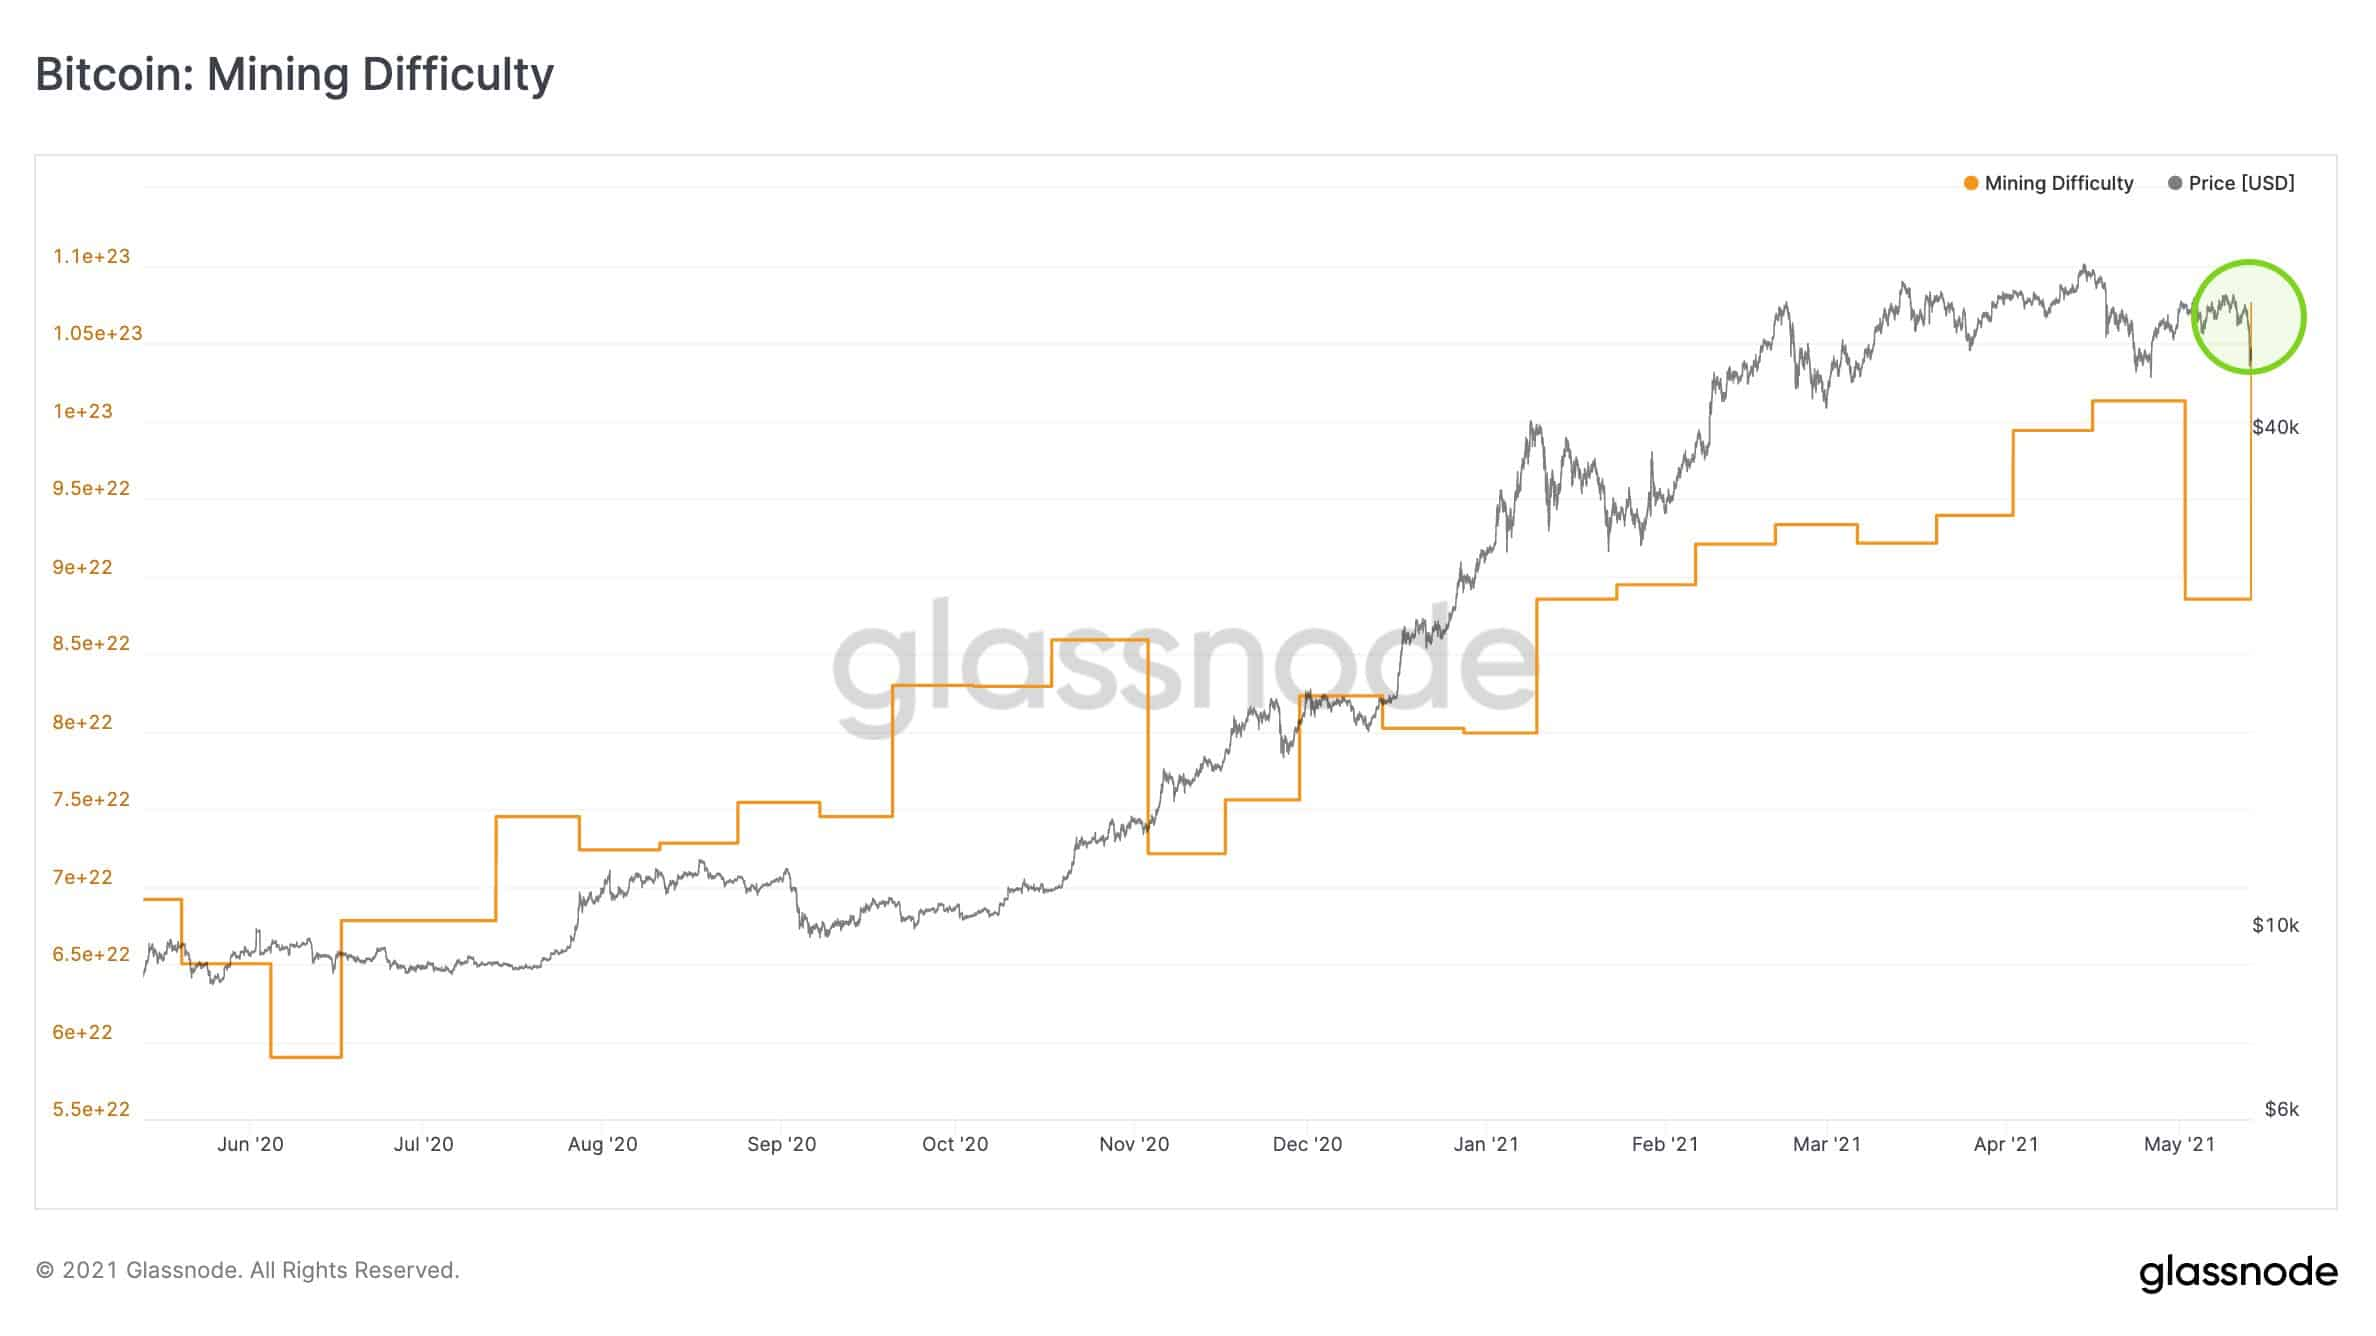 Bitcoin Mining Difficulty. Source: Glassnode